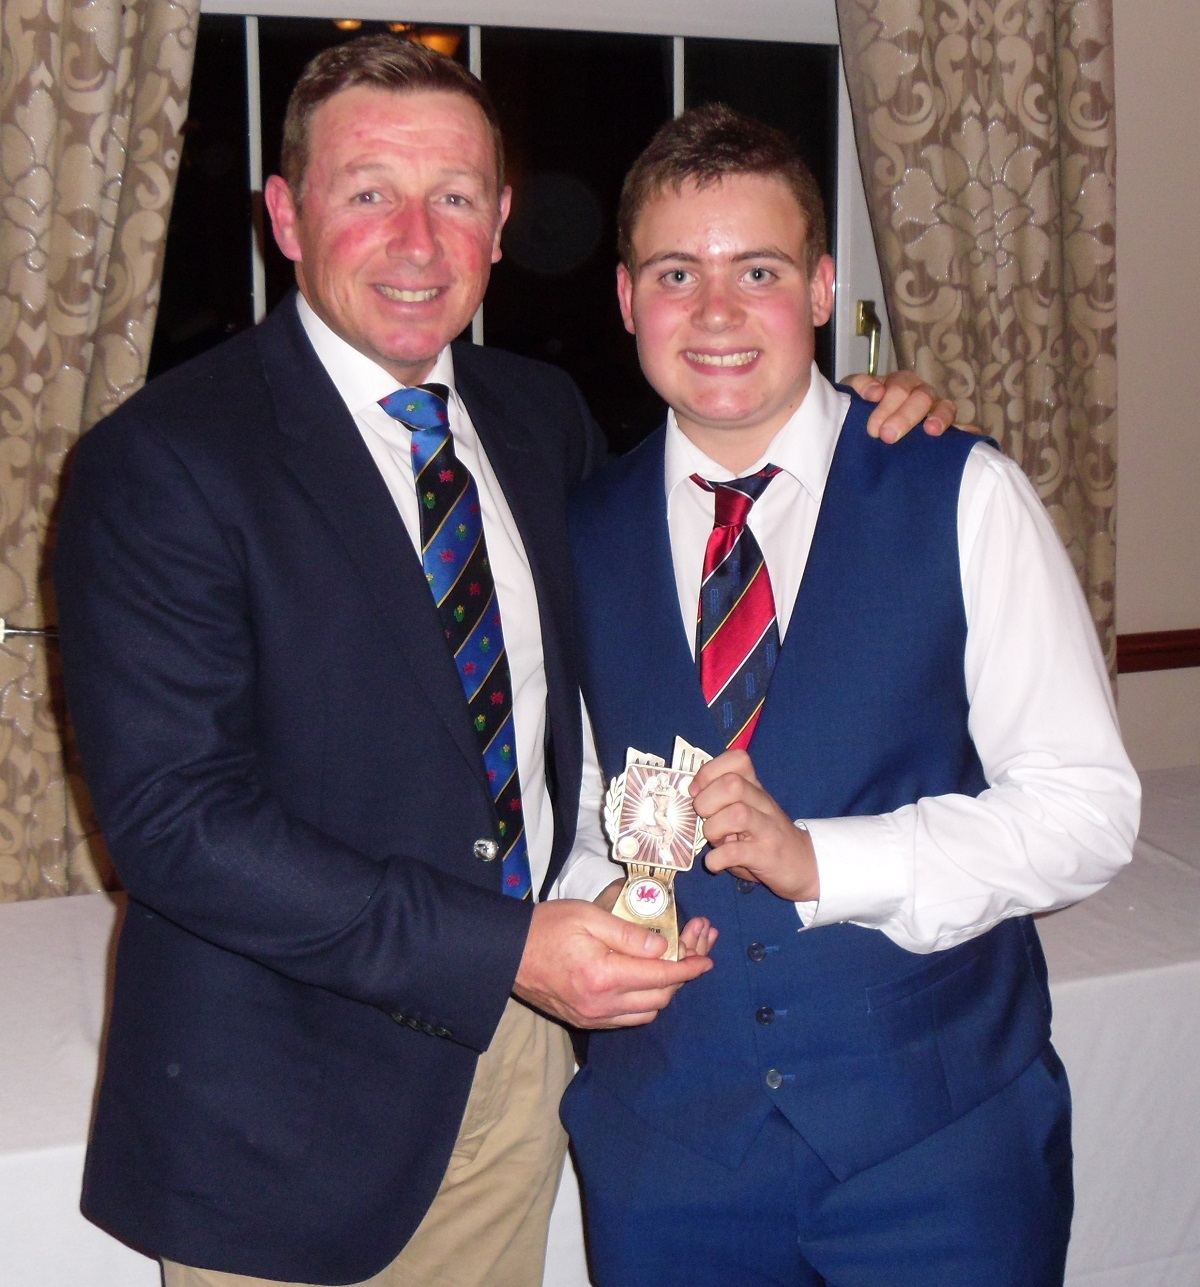 Dafydd Wyn Hatley receives a prize from former England cricket international a Glamorgan spin bowler Robert Croft for the most wickets in Division Six of the South Wales Cricket Association. Dafydd is a member of the Llandysul 2nd XI.